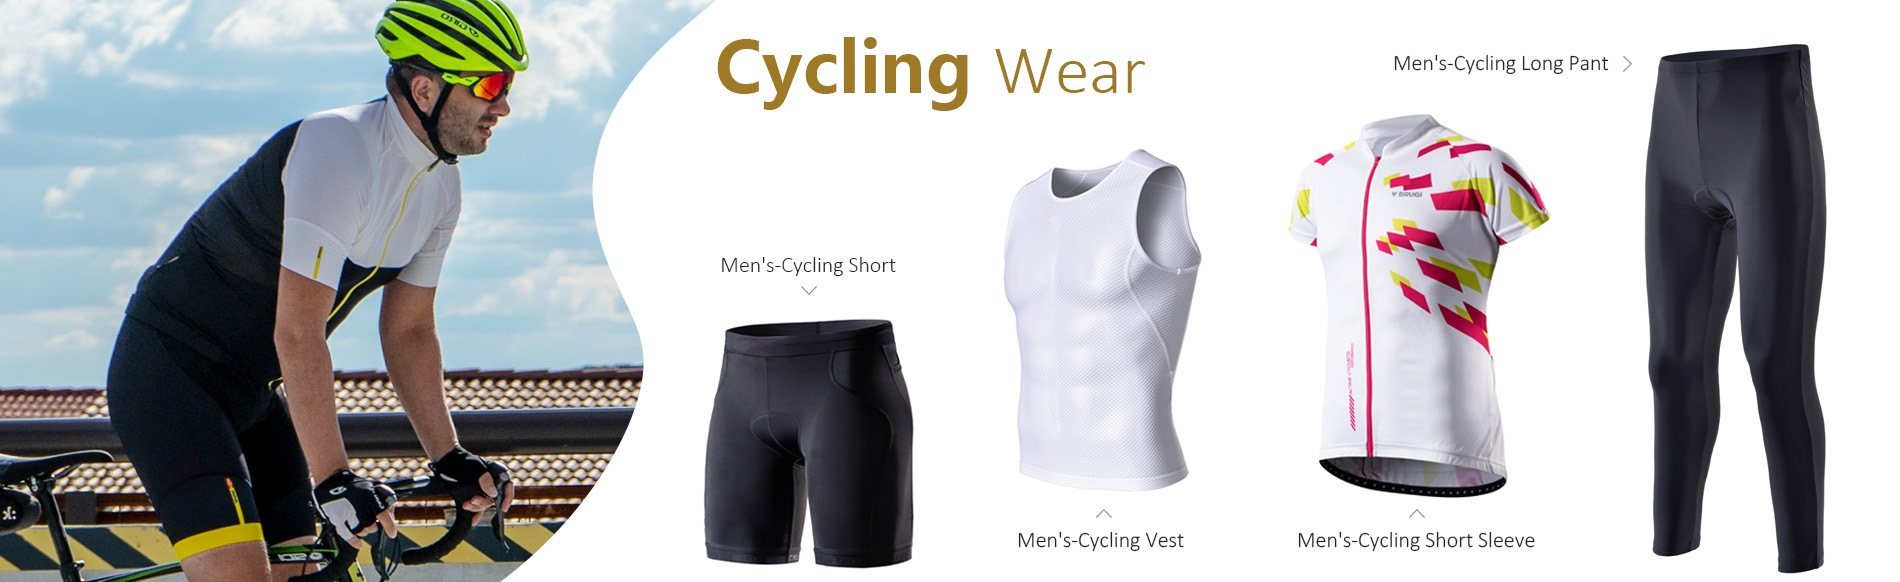 cycling clothing manufacturer